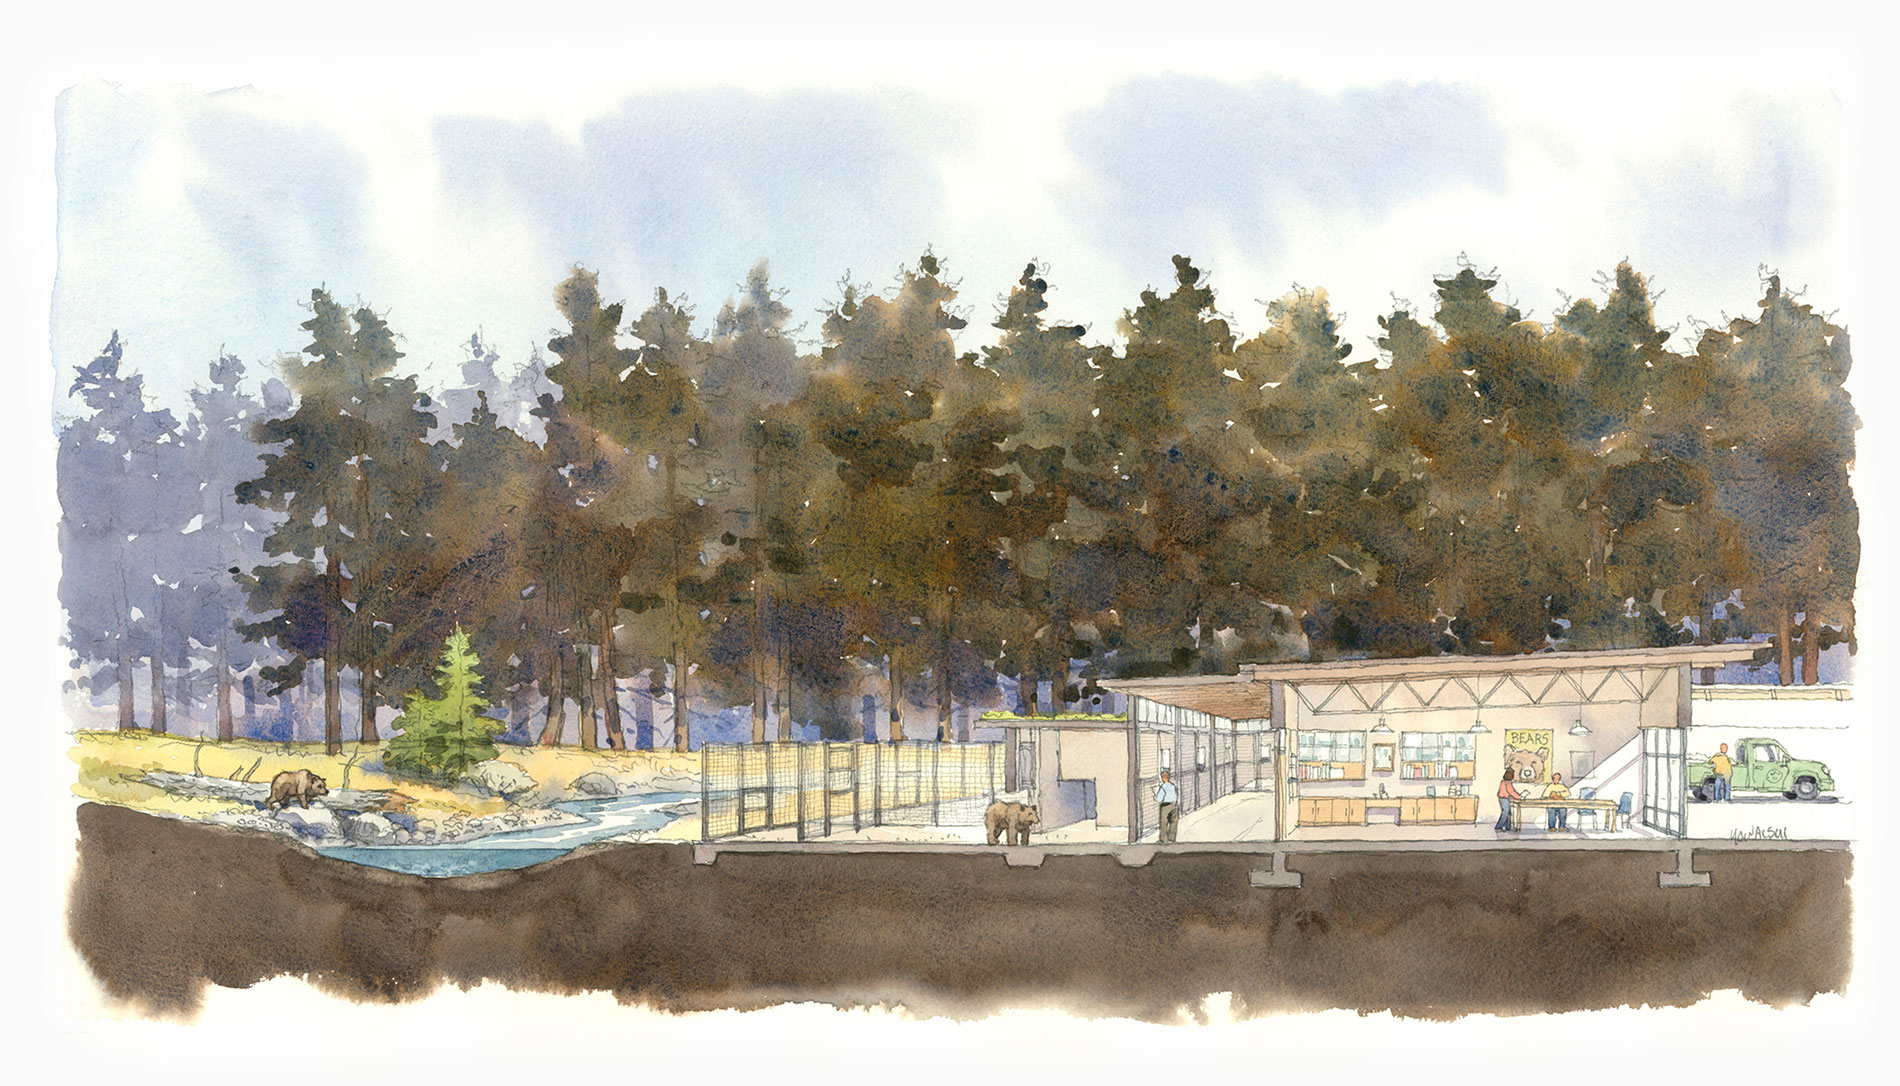 A watercolor sketch of a bear facility next to a river and forest